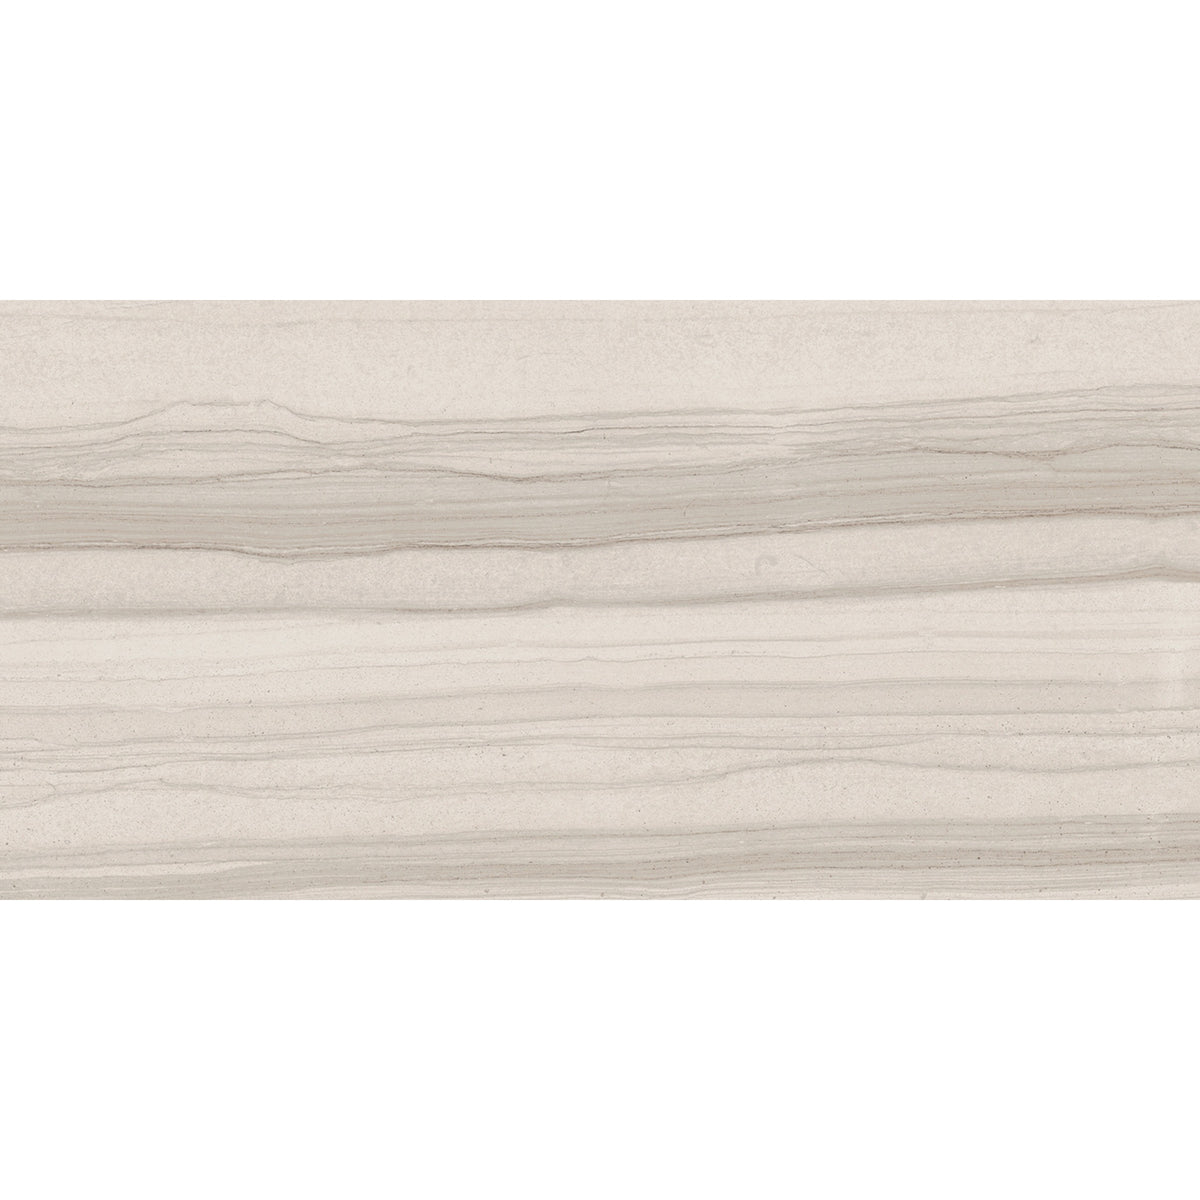 Interceramic - Burano Bianco Valetta 12 in. x 24 in. Ceramic Tile